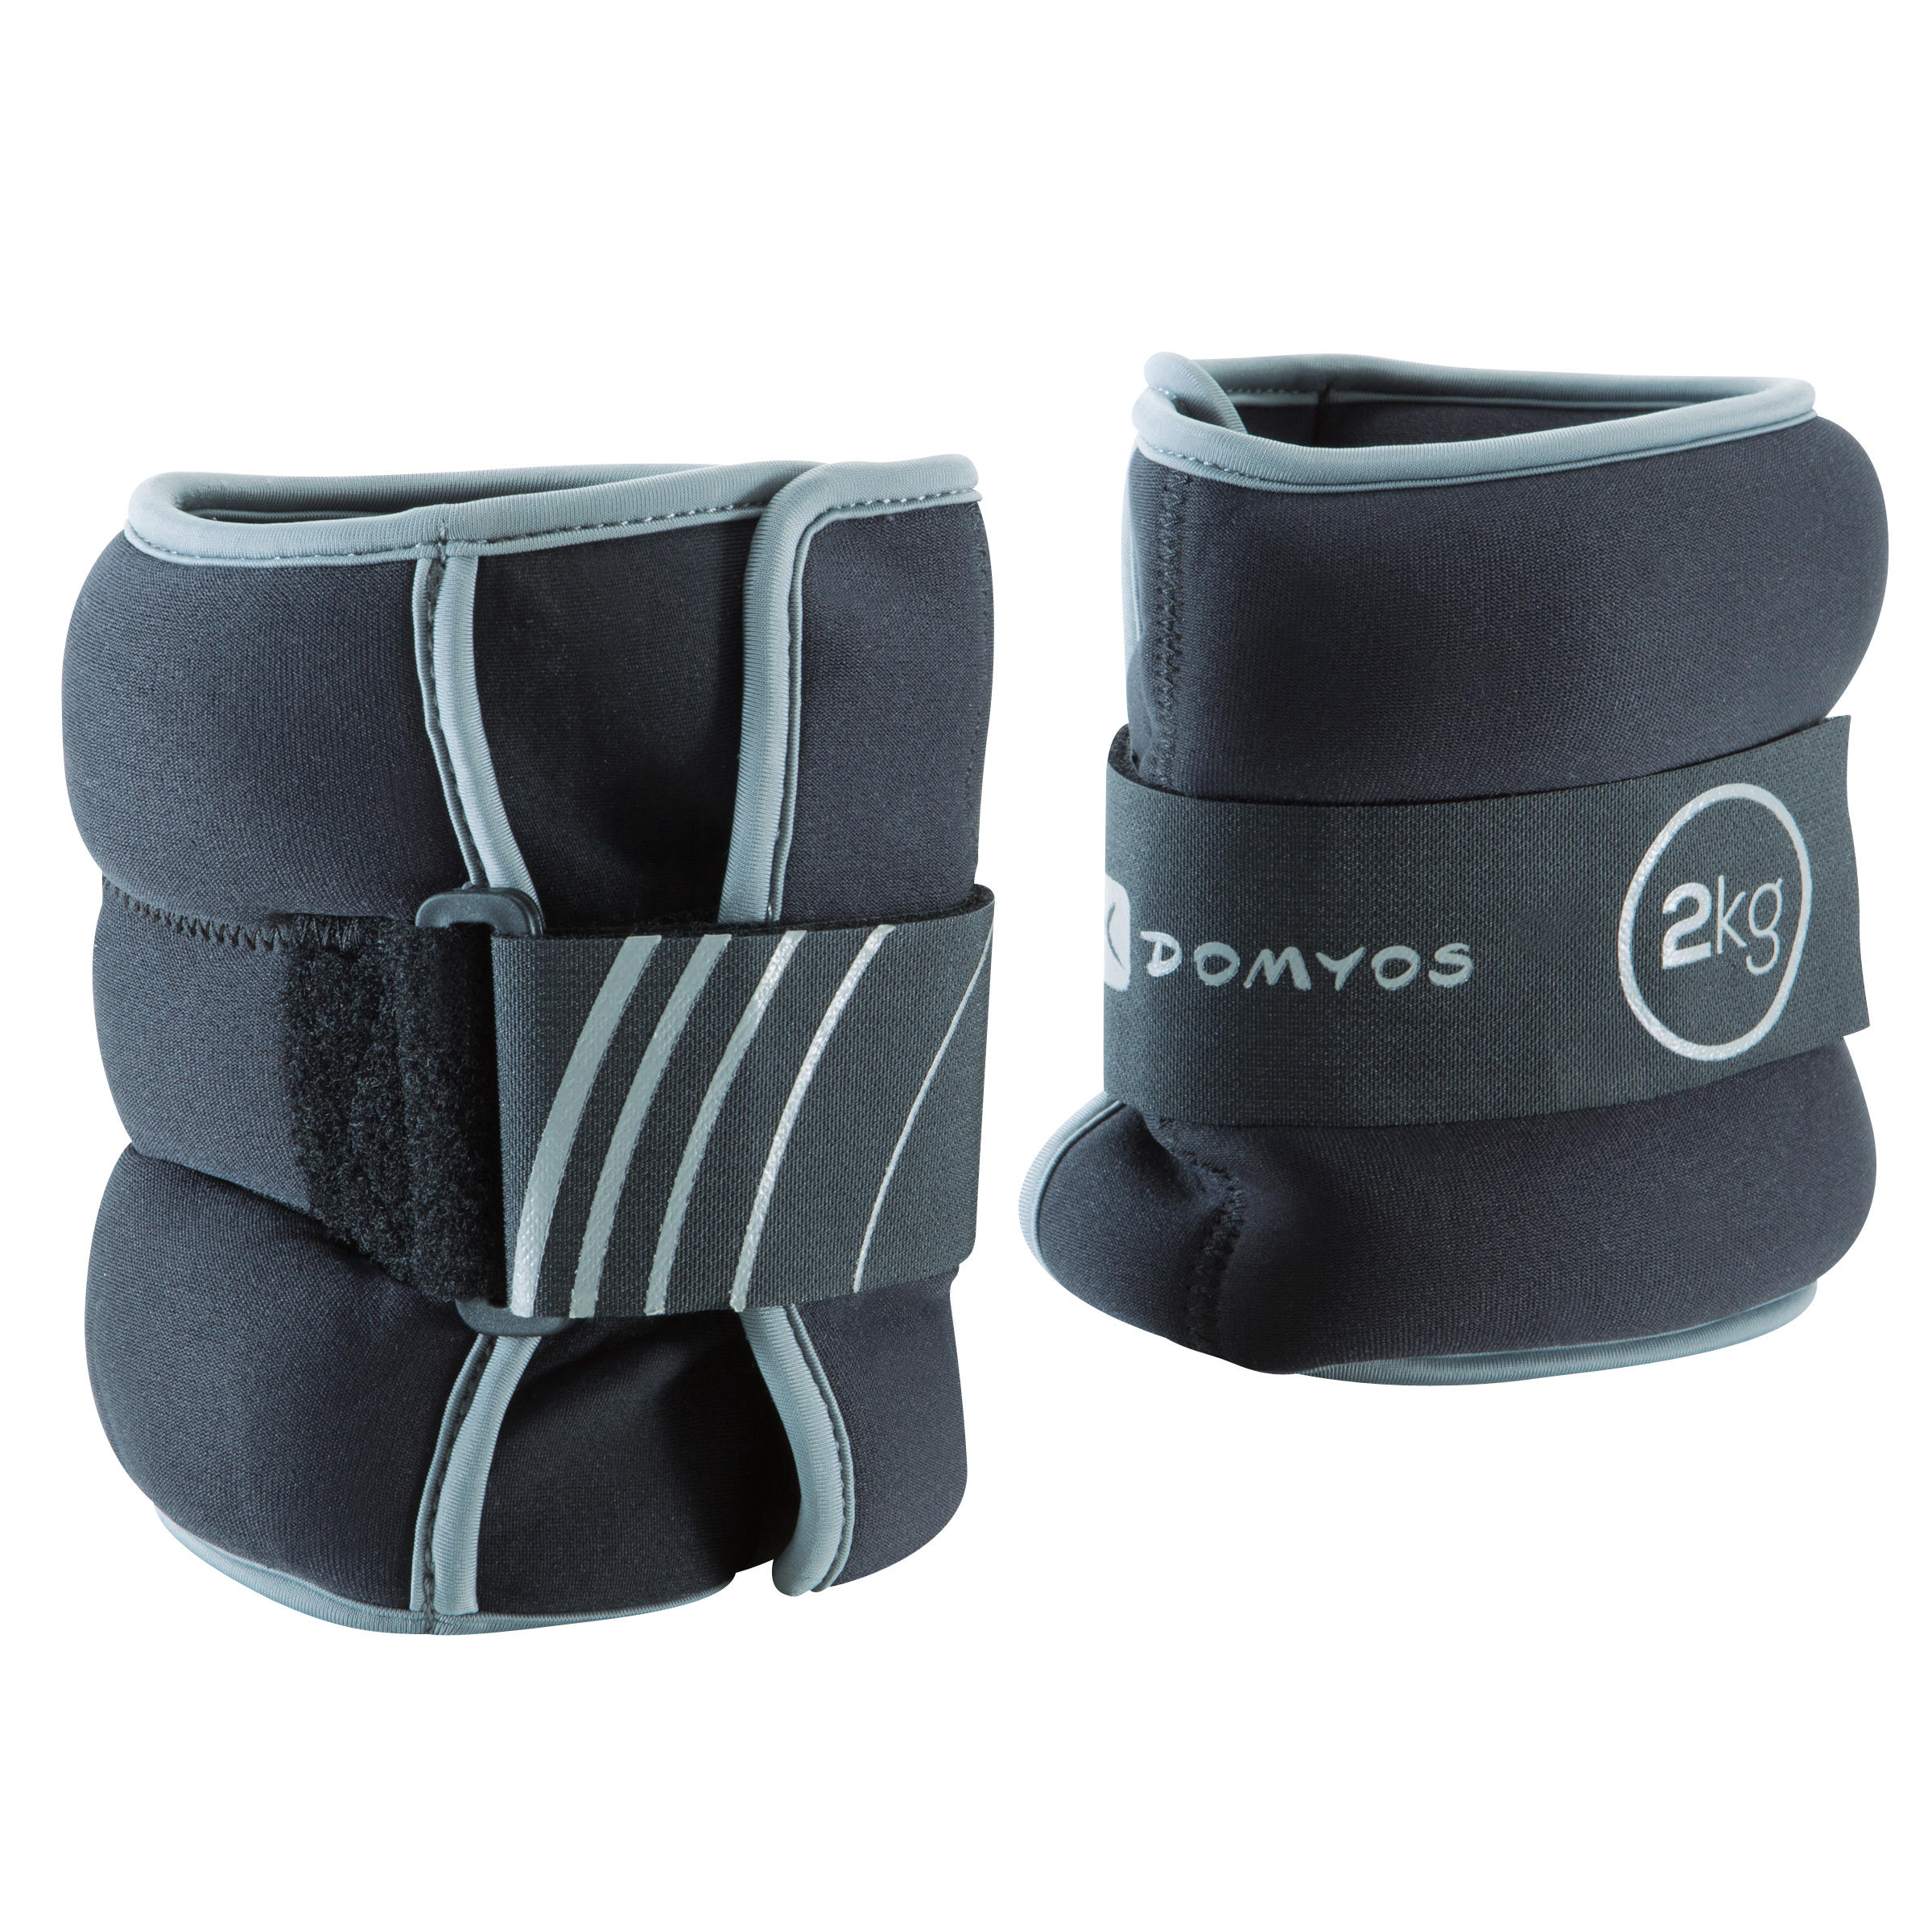 2 kg Flexible Ankle and Wrist Weights